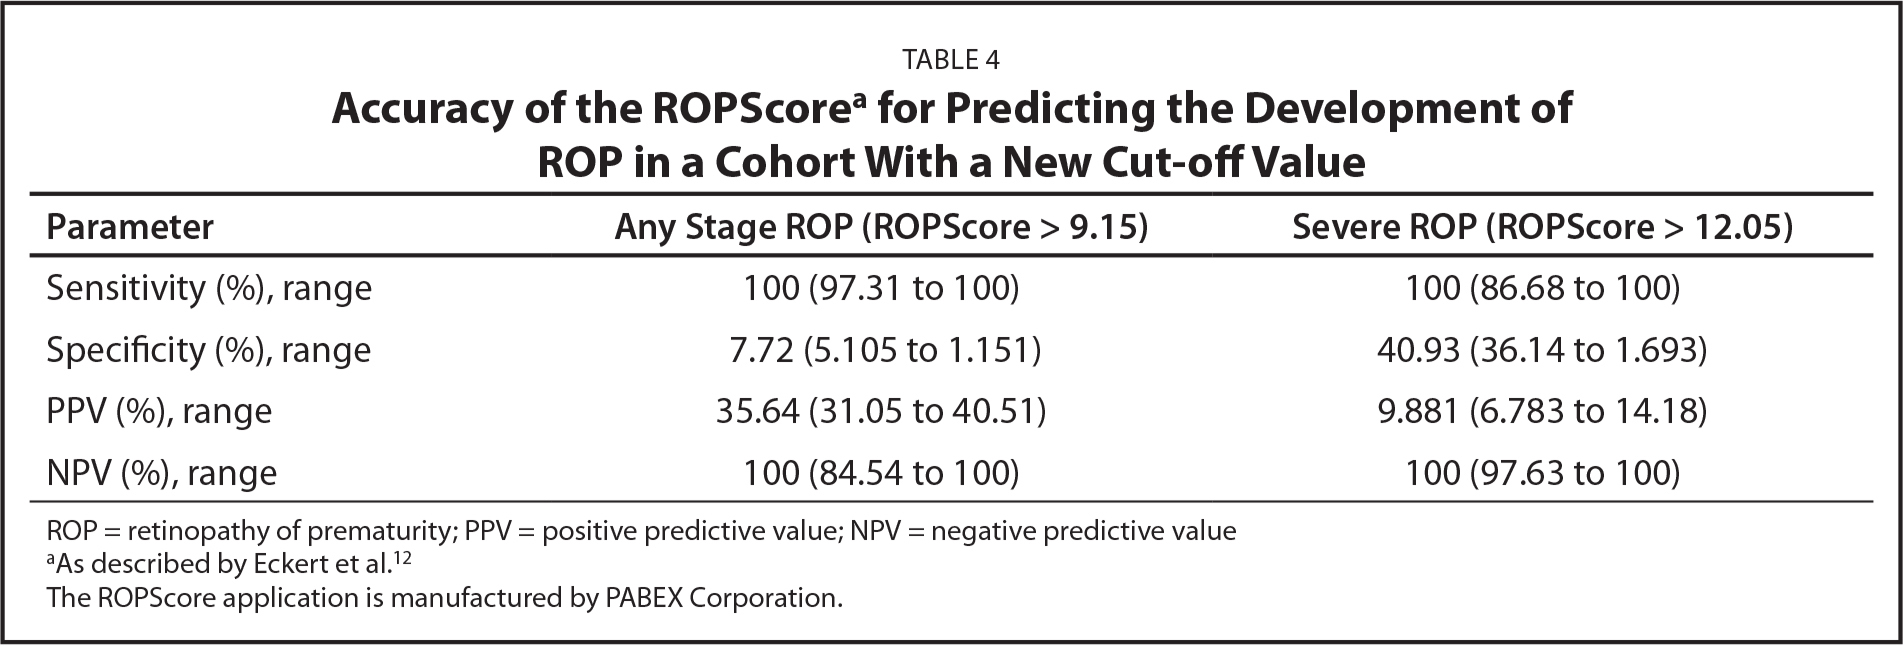 Accuracy of the ROPScorea for Predicting the Development of ROP in a Cohort With a New Cut-off Value